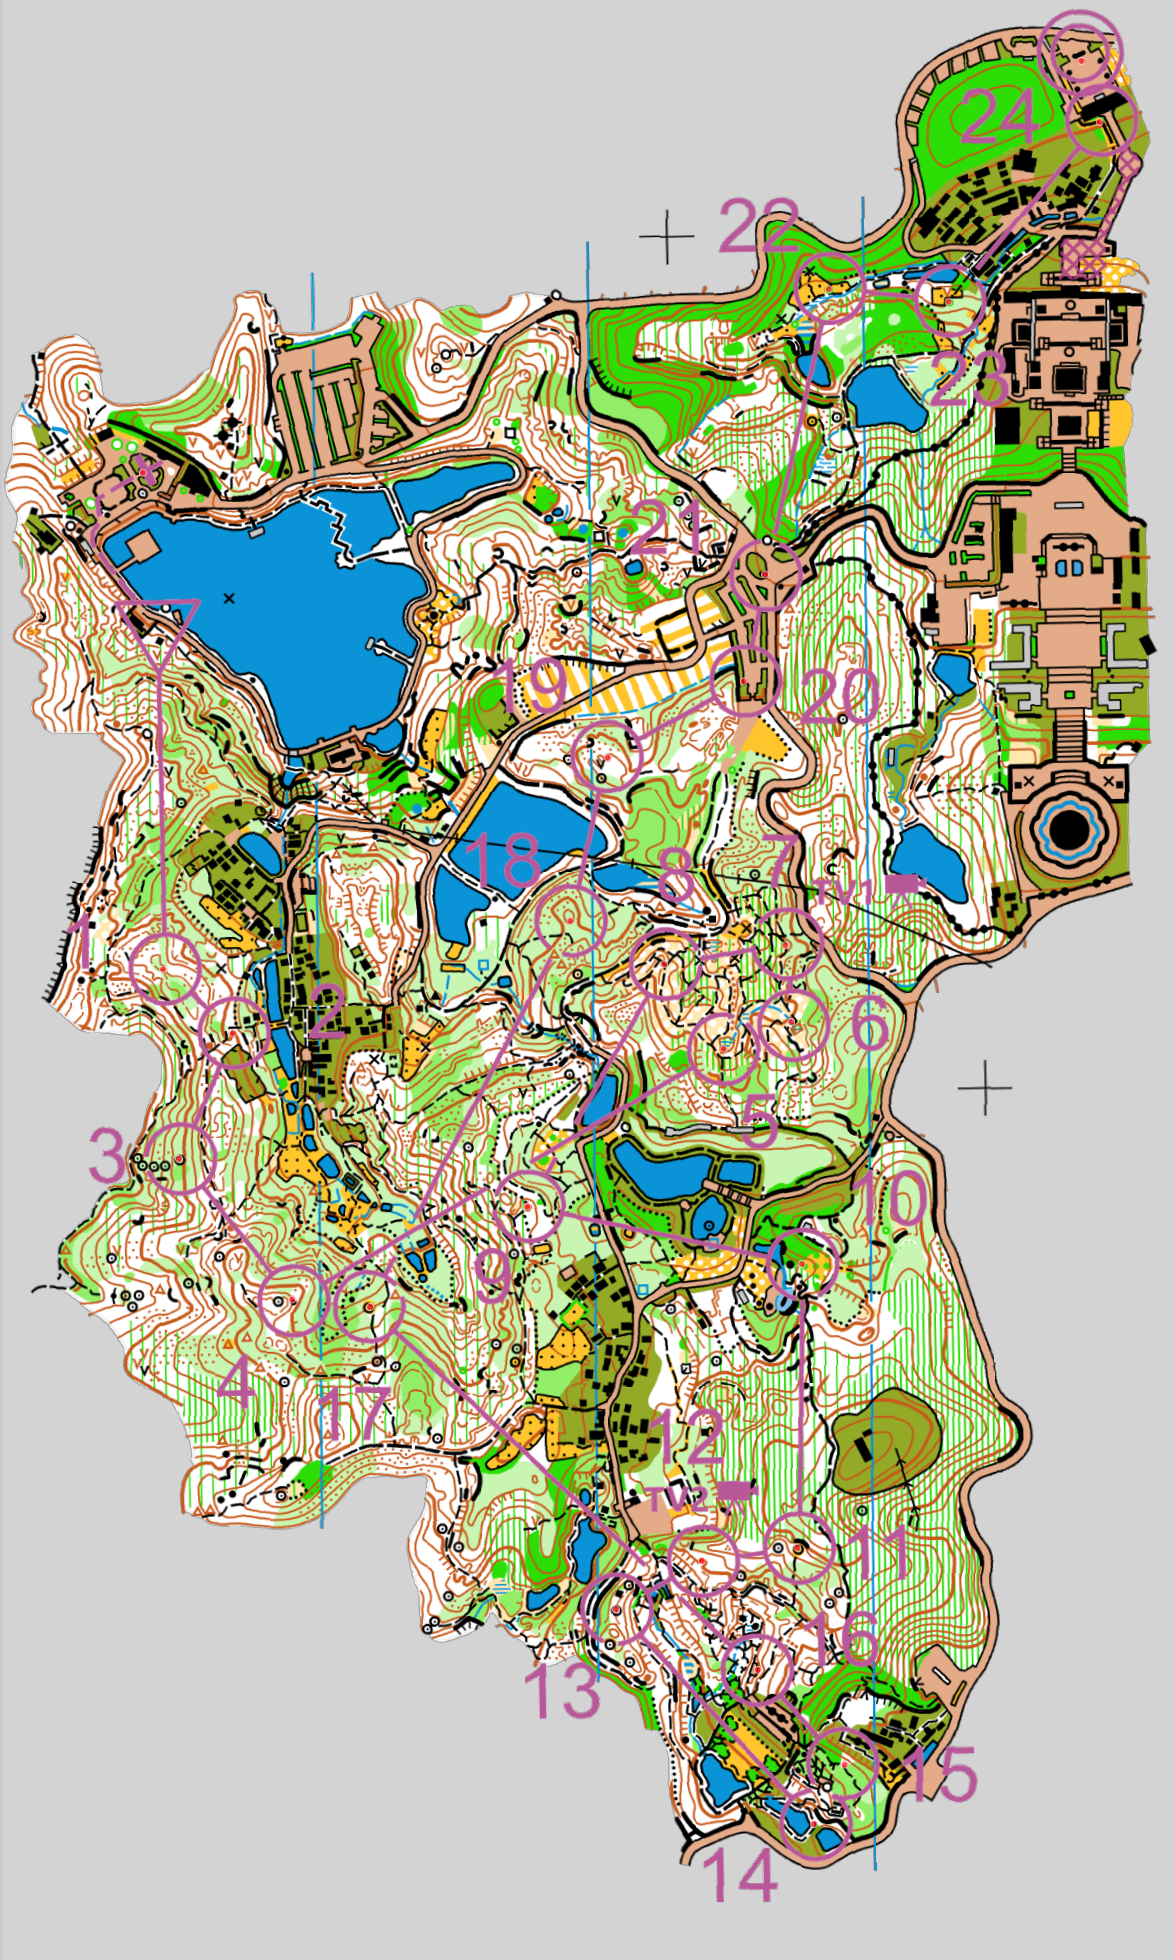 World Cup China Middle 2019: Maps and Results | World of O News